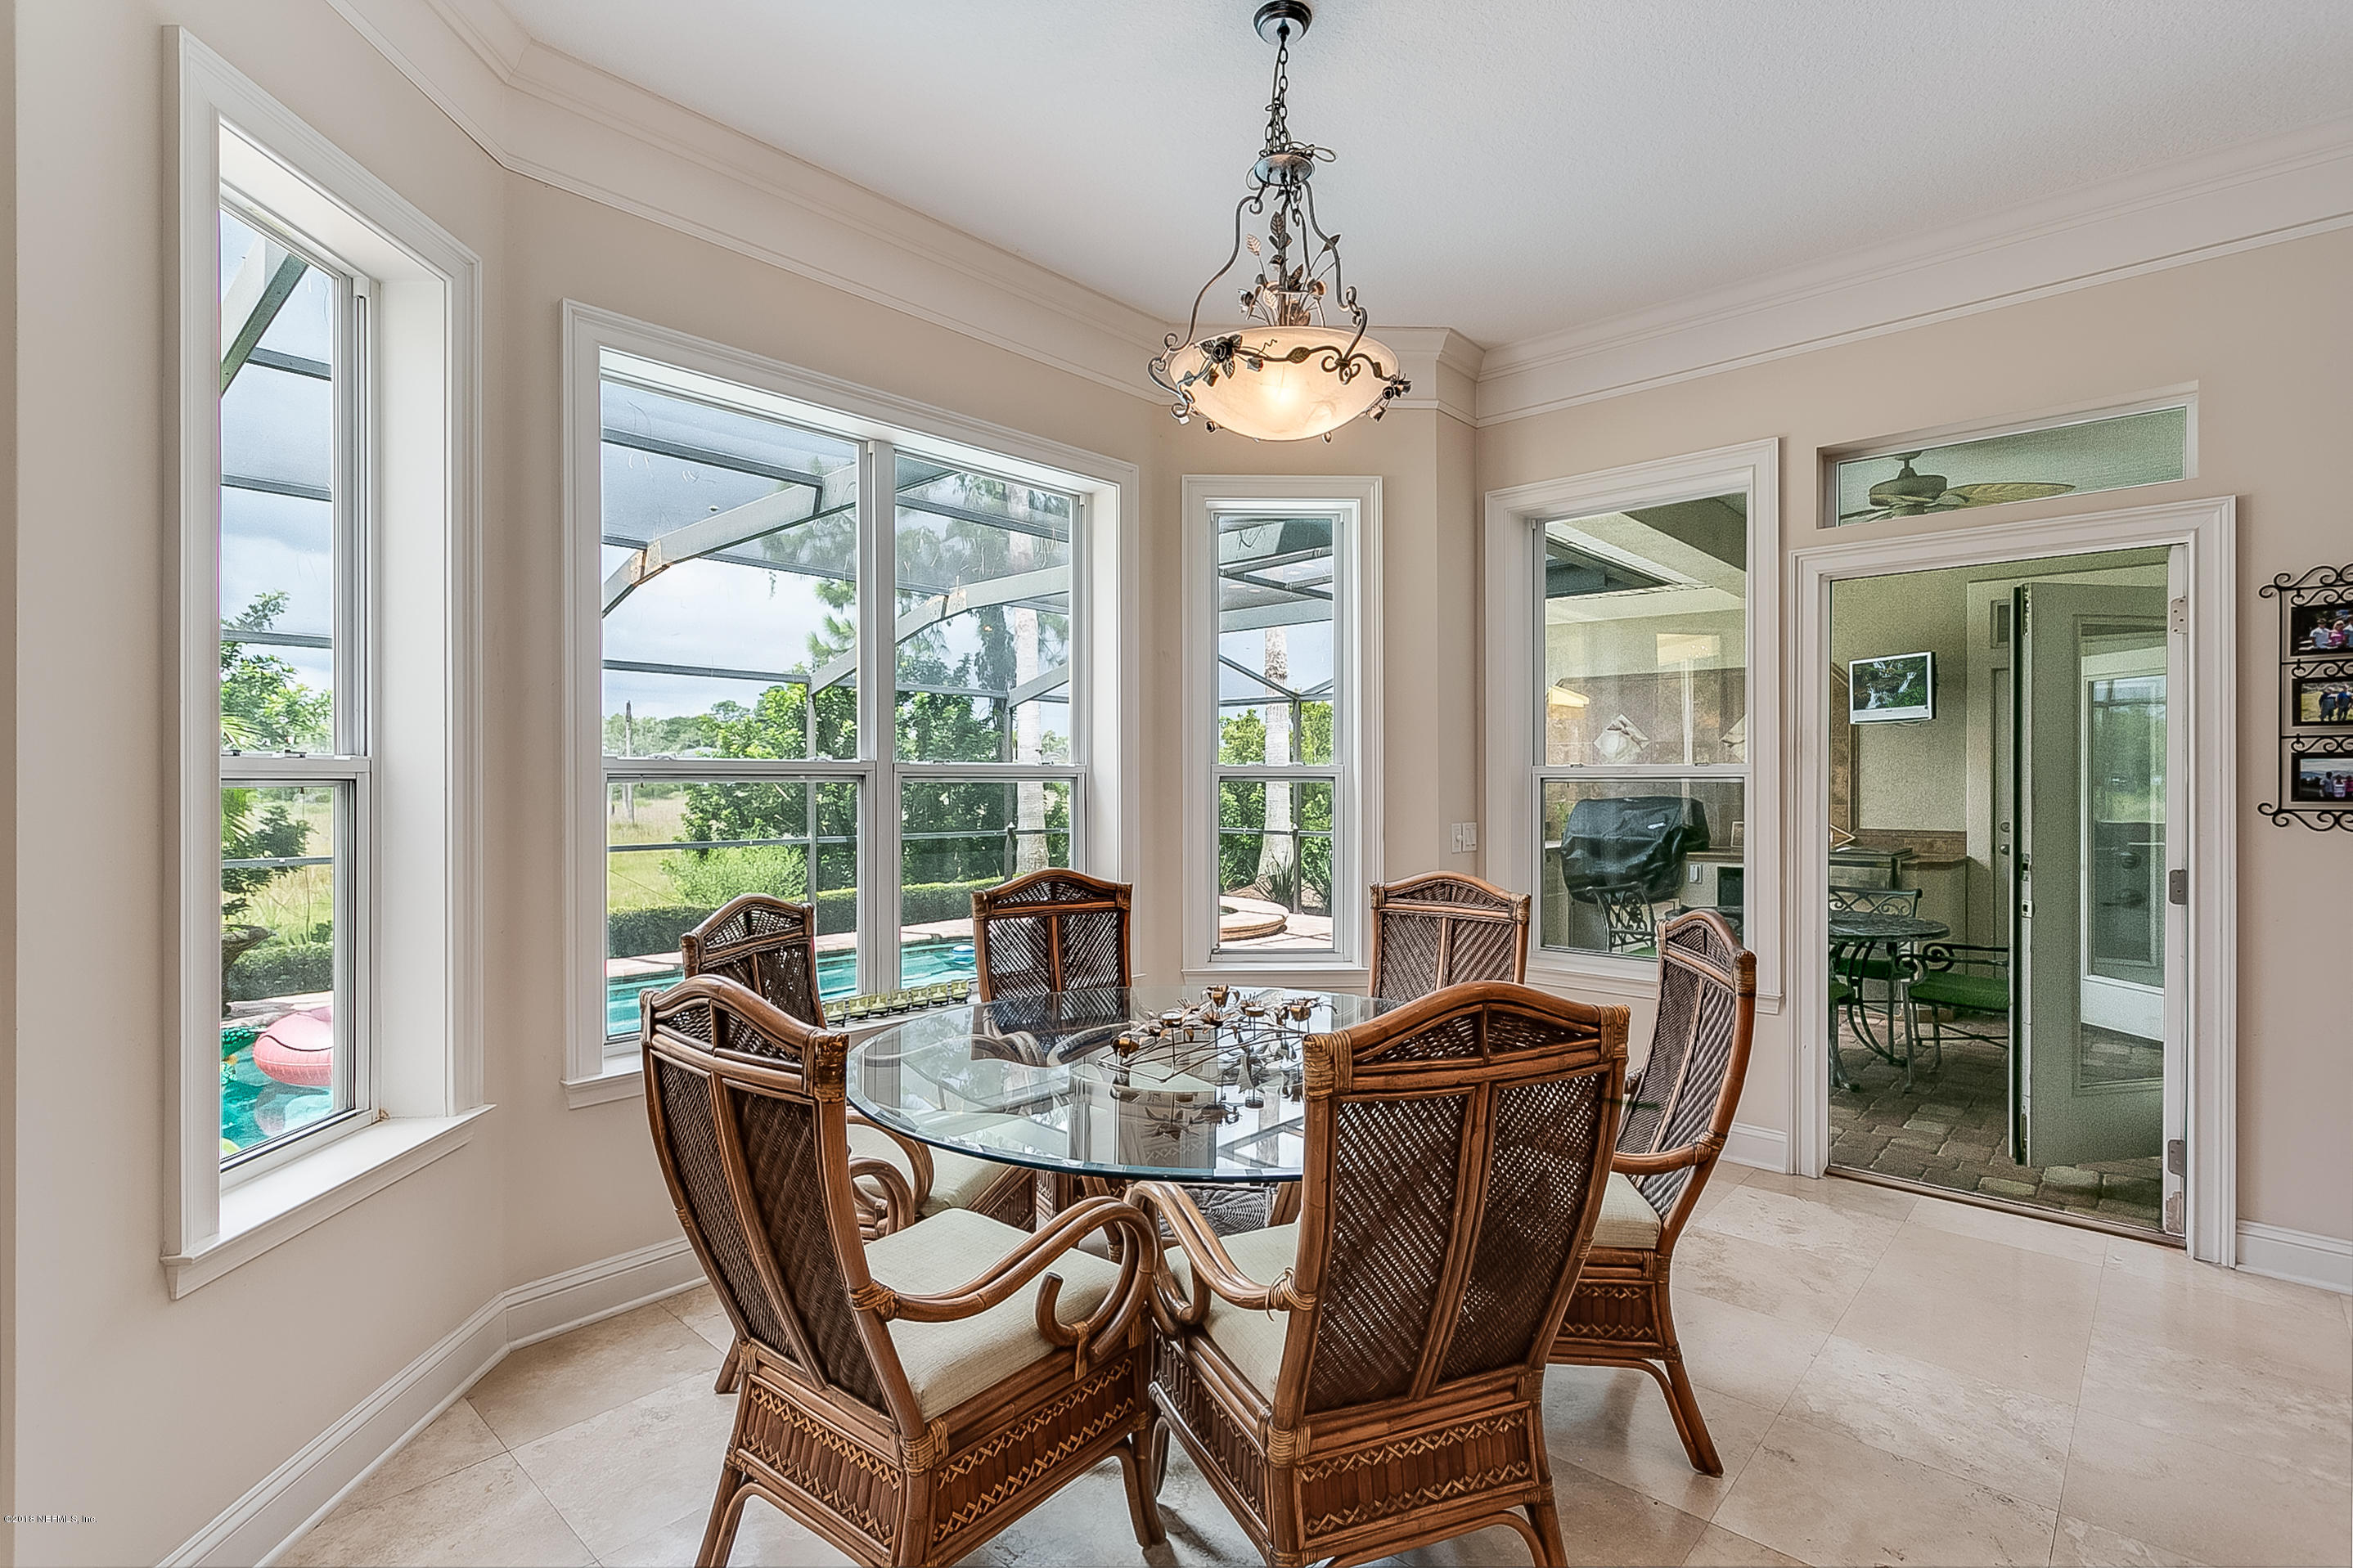 188 CLEARLAKE, PONTE VEDRA BEACH, FLORIDA 32082, 5 Bedrooms Bedrooms, ,4 BathroomsBathrooms,Residential - single family,For sale,CLEARLAKE,945680